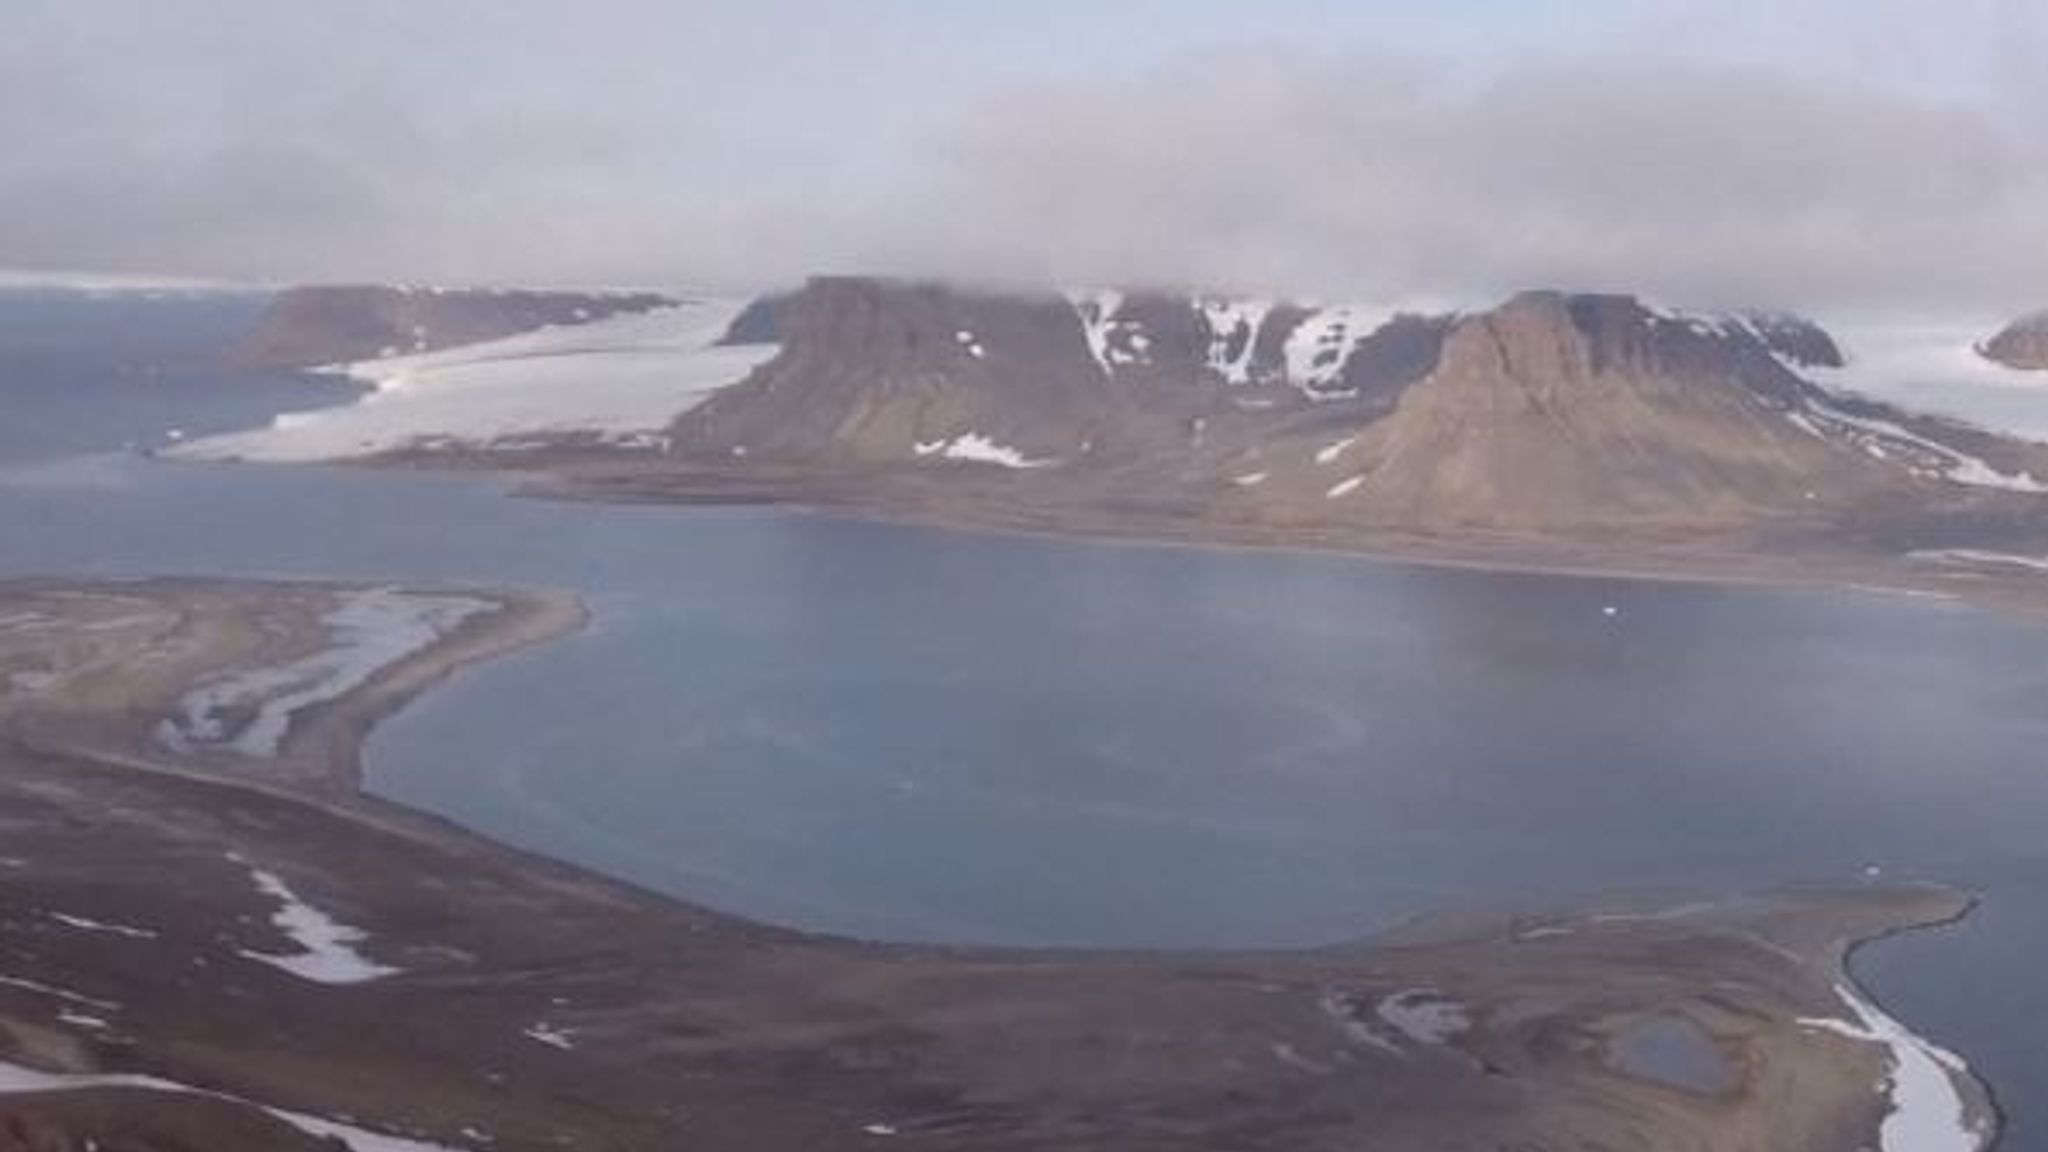 Arctic: Melting glaciers reveal five new islands